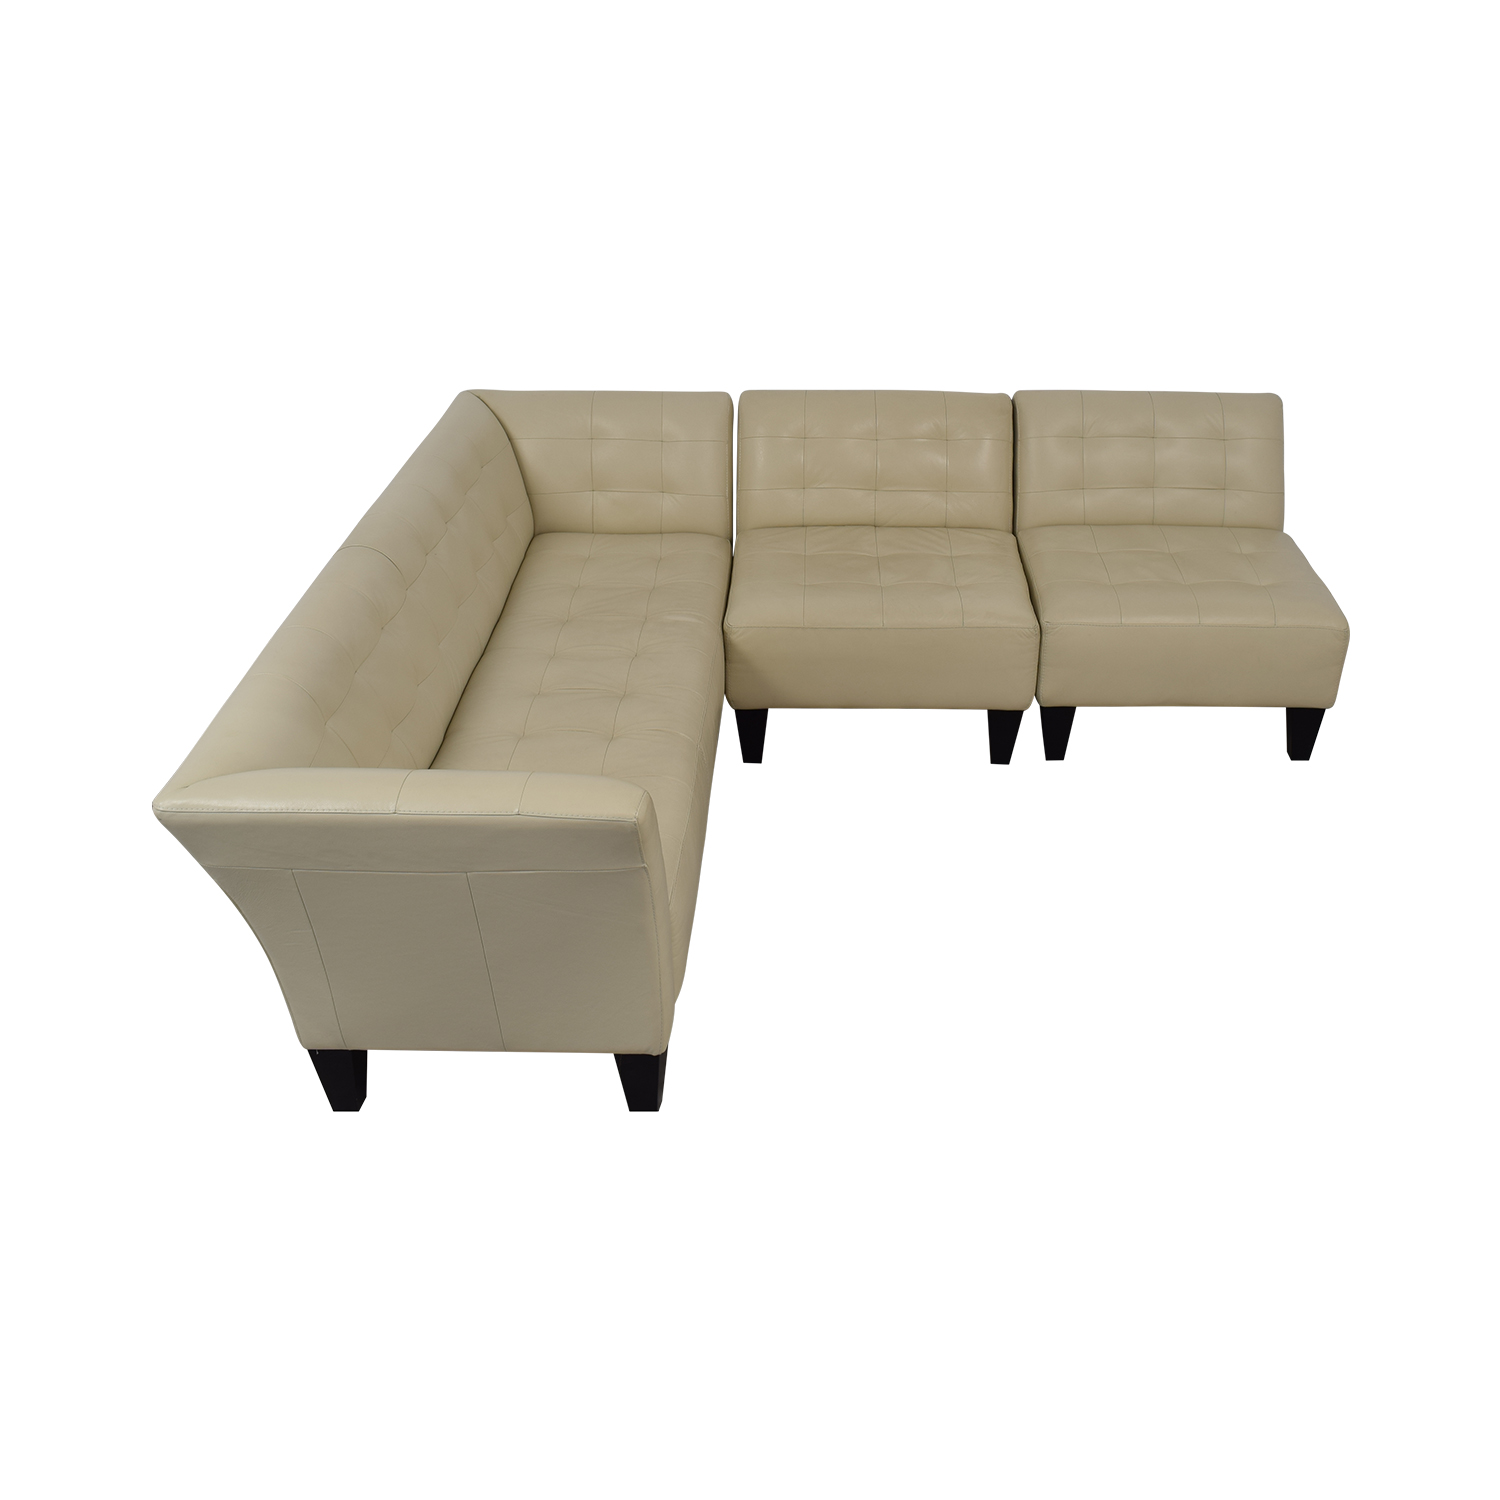 Chateau d'Ax Chateau d'Ax White Faux Leather Sectional Sofa Sectionals